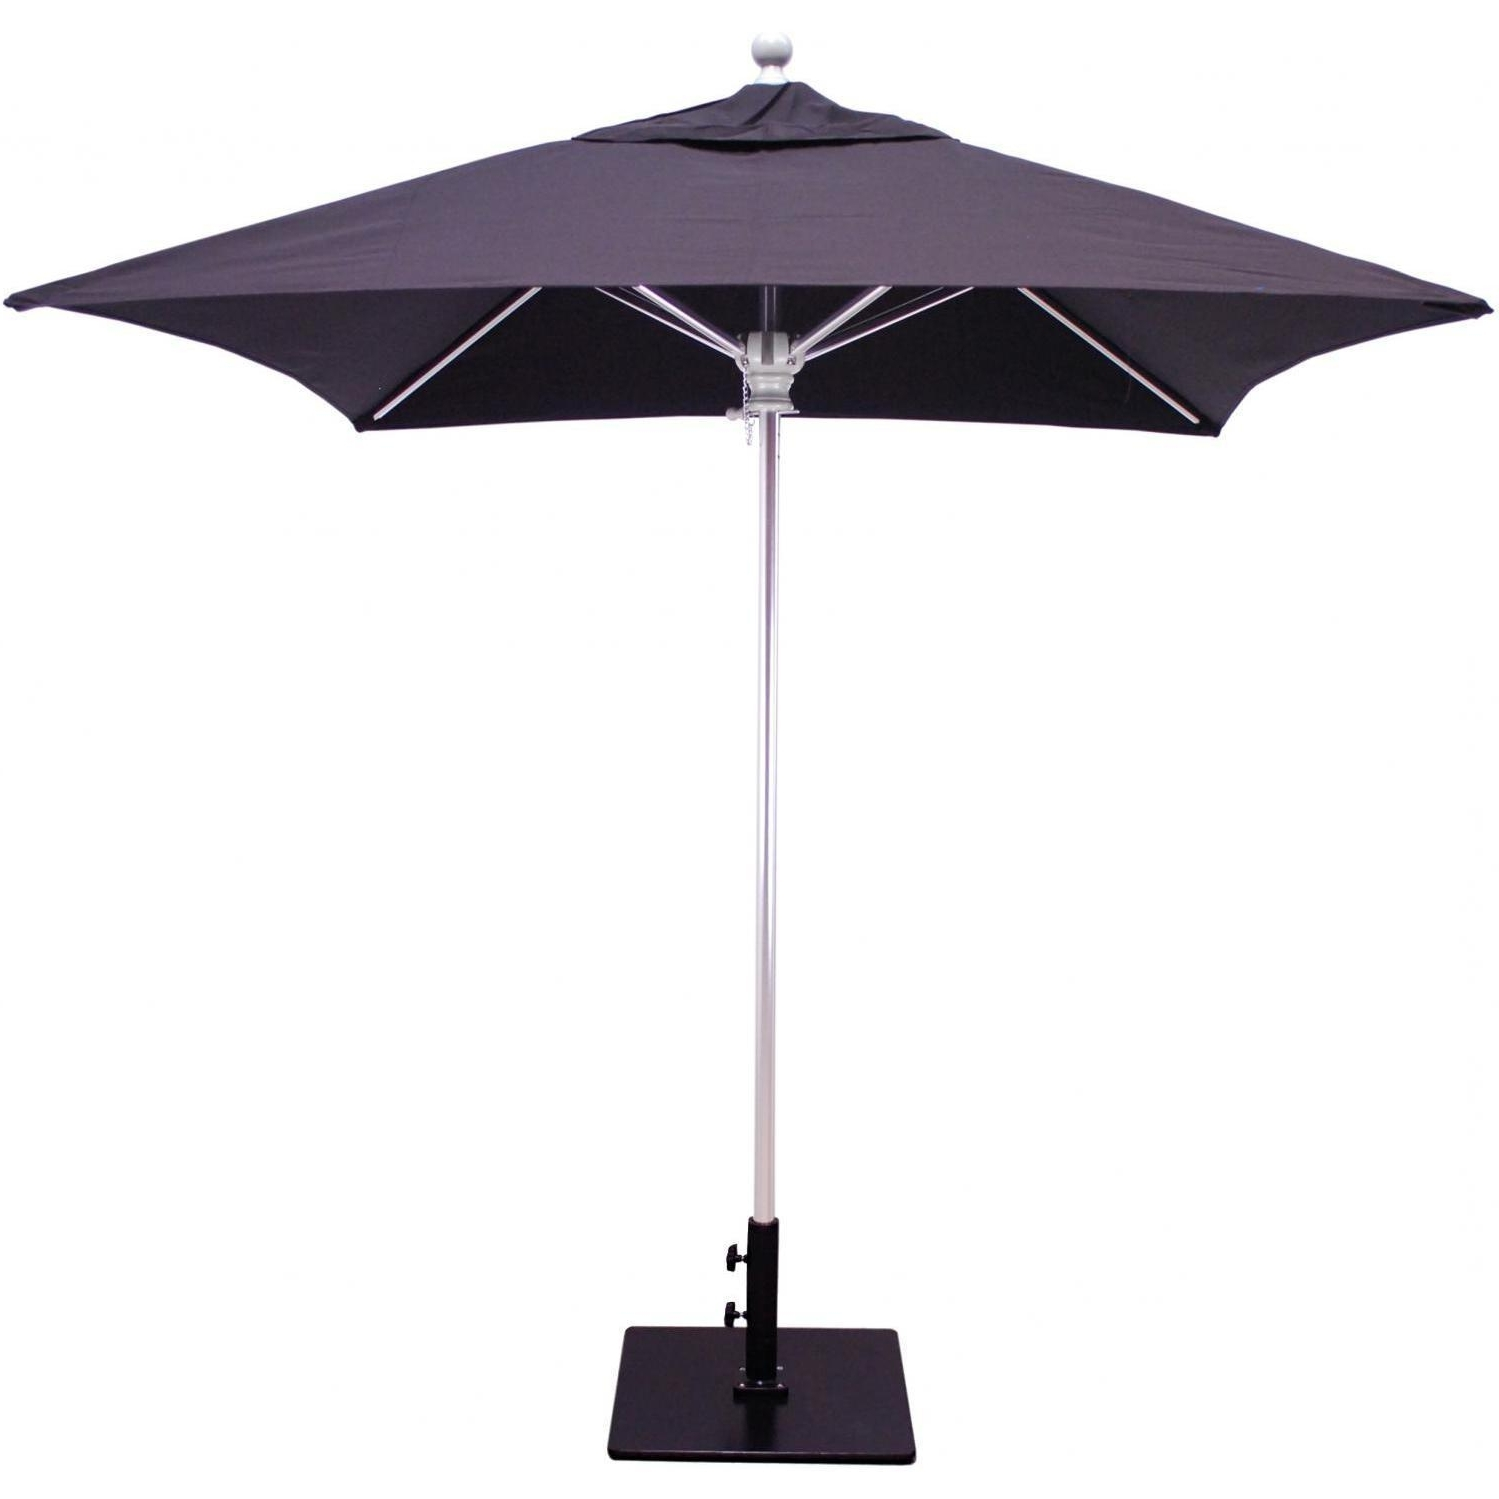 Square Patio Umbrellas Within 2018 Galtech Sr Series 6 Ft Aluminum Square Commercial Patio Umbrella (View 17 of 20)